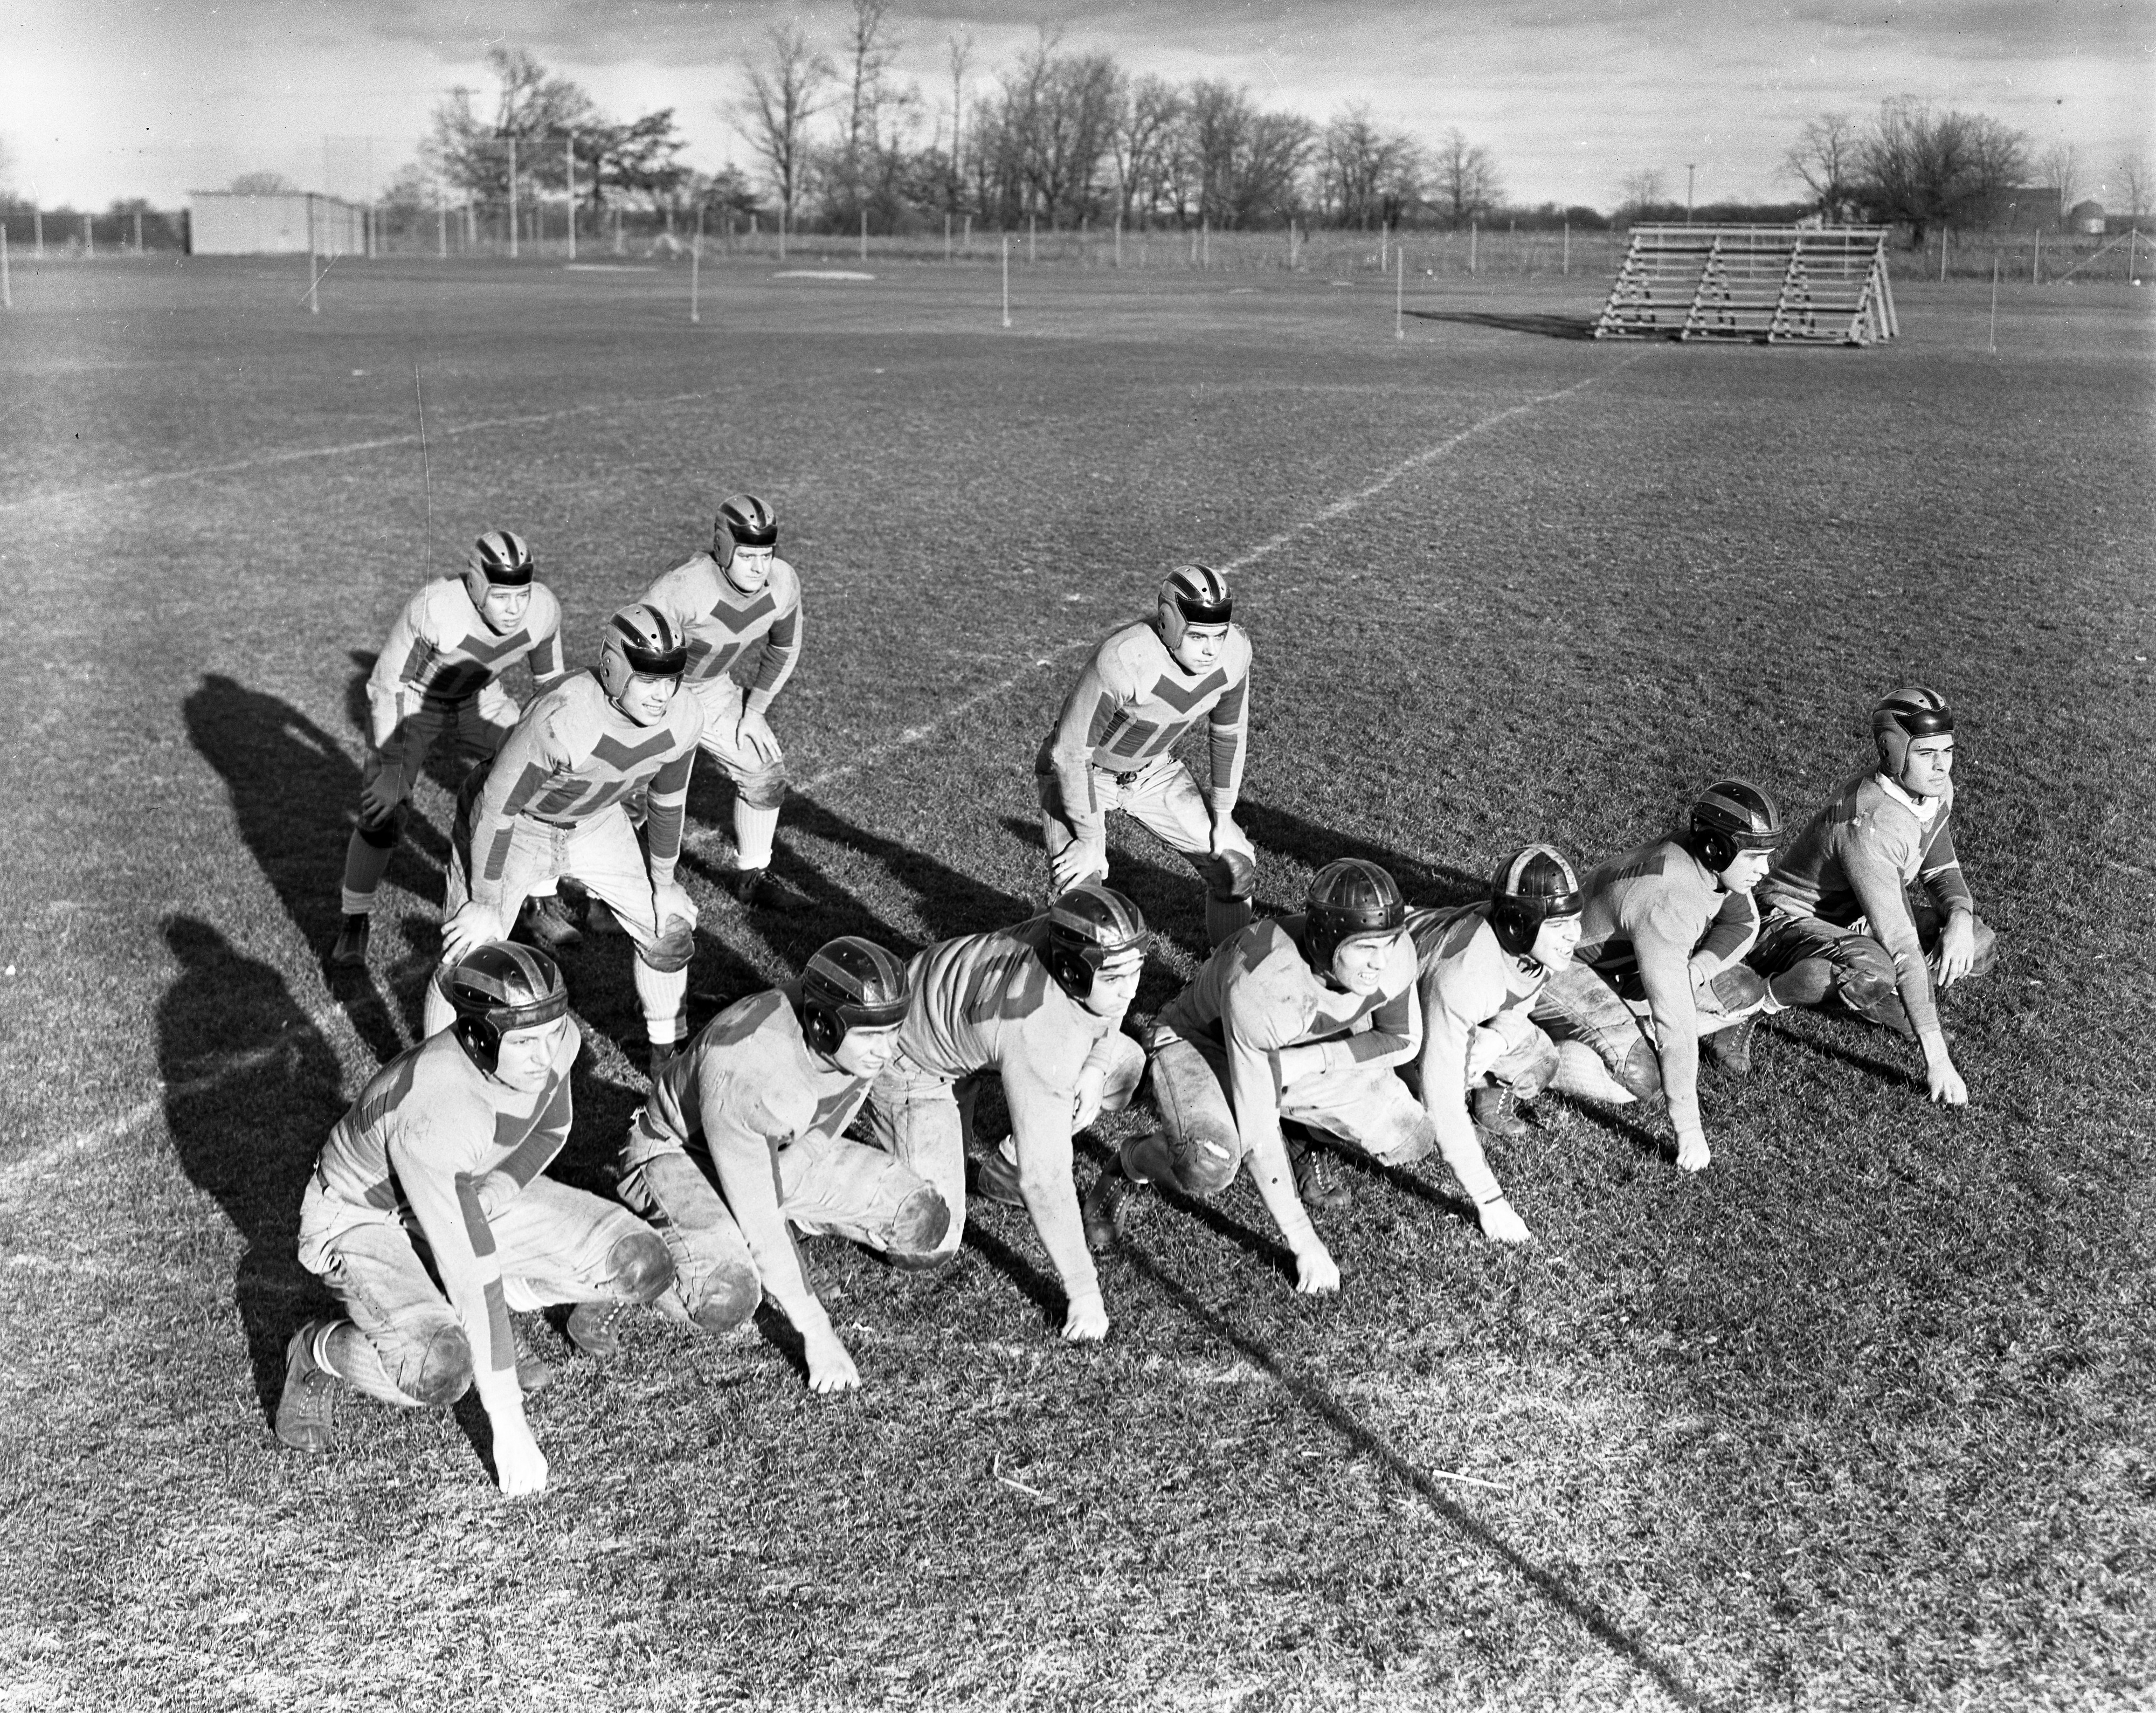 Chelsea High School Football Team, November 1938 image